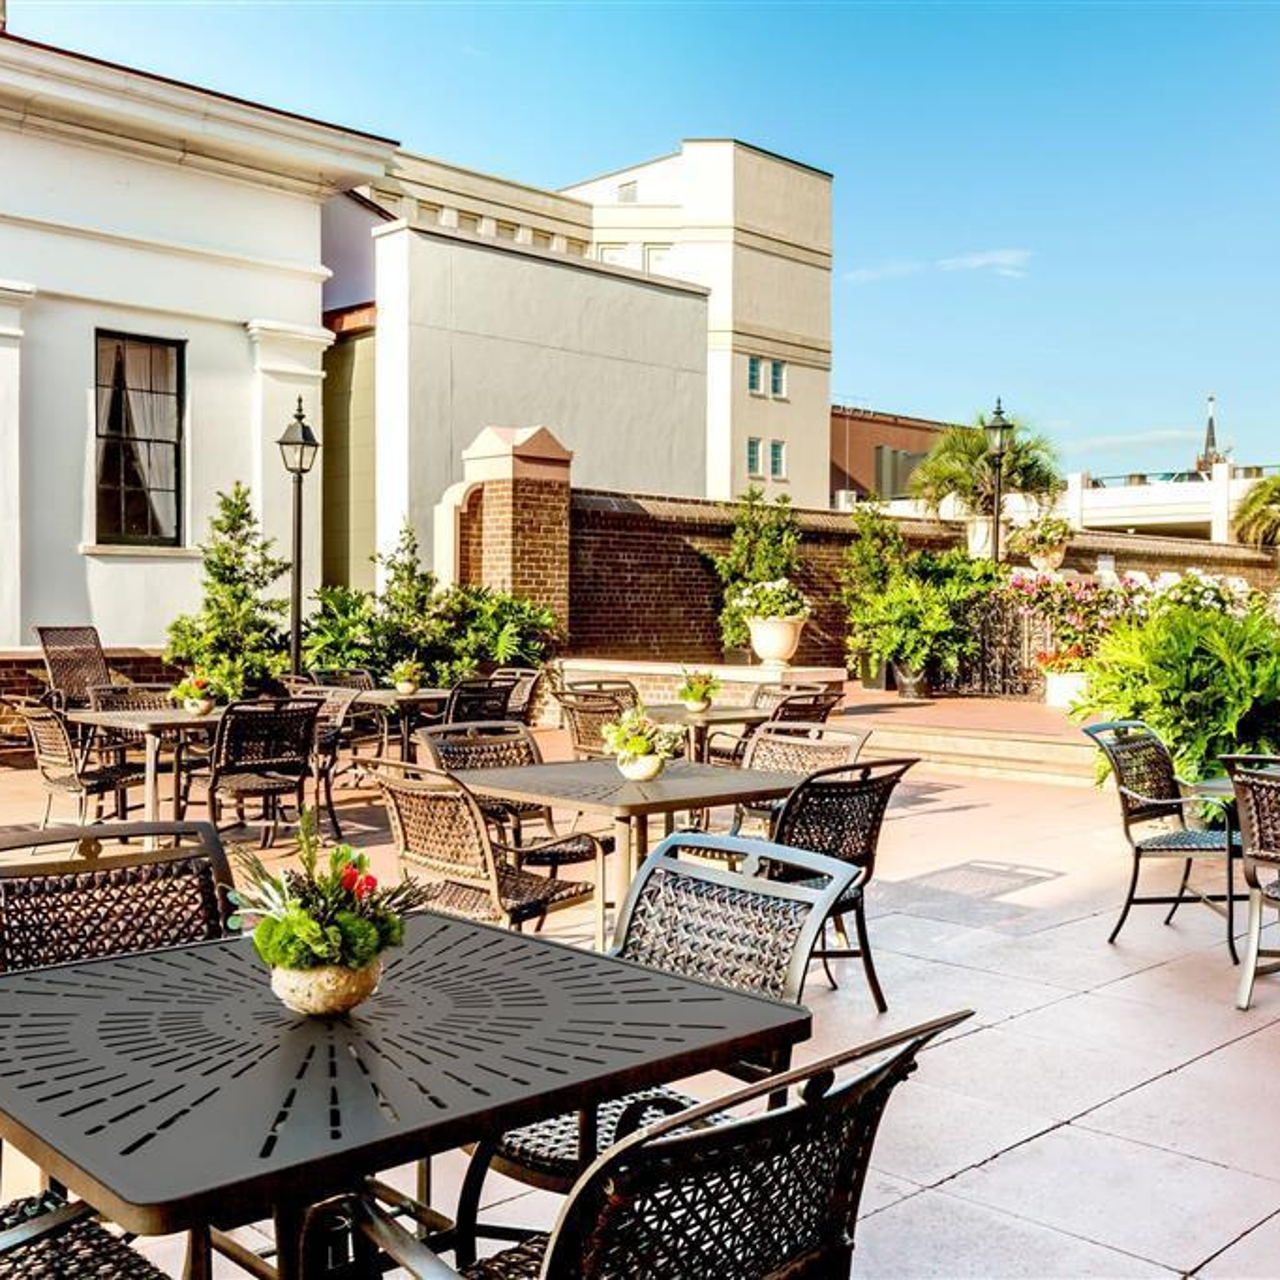 The Mills House Wyndham Grand Hotel United States Of America At Hrs With Free Services